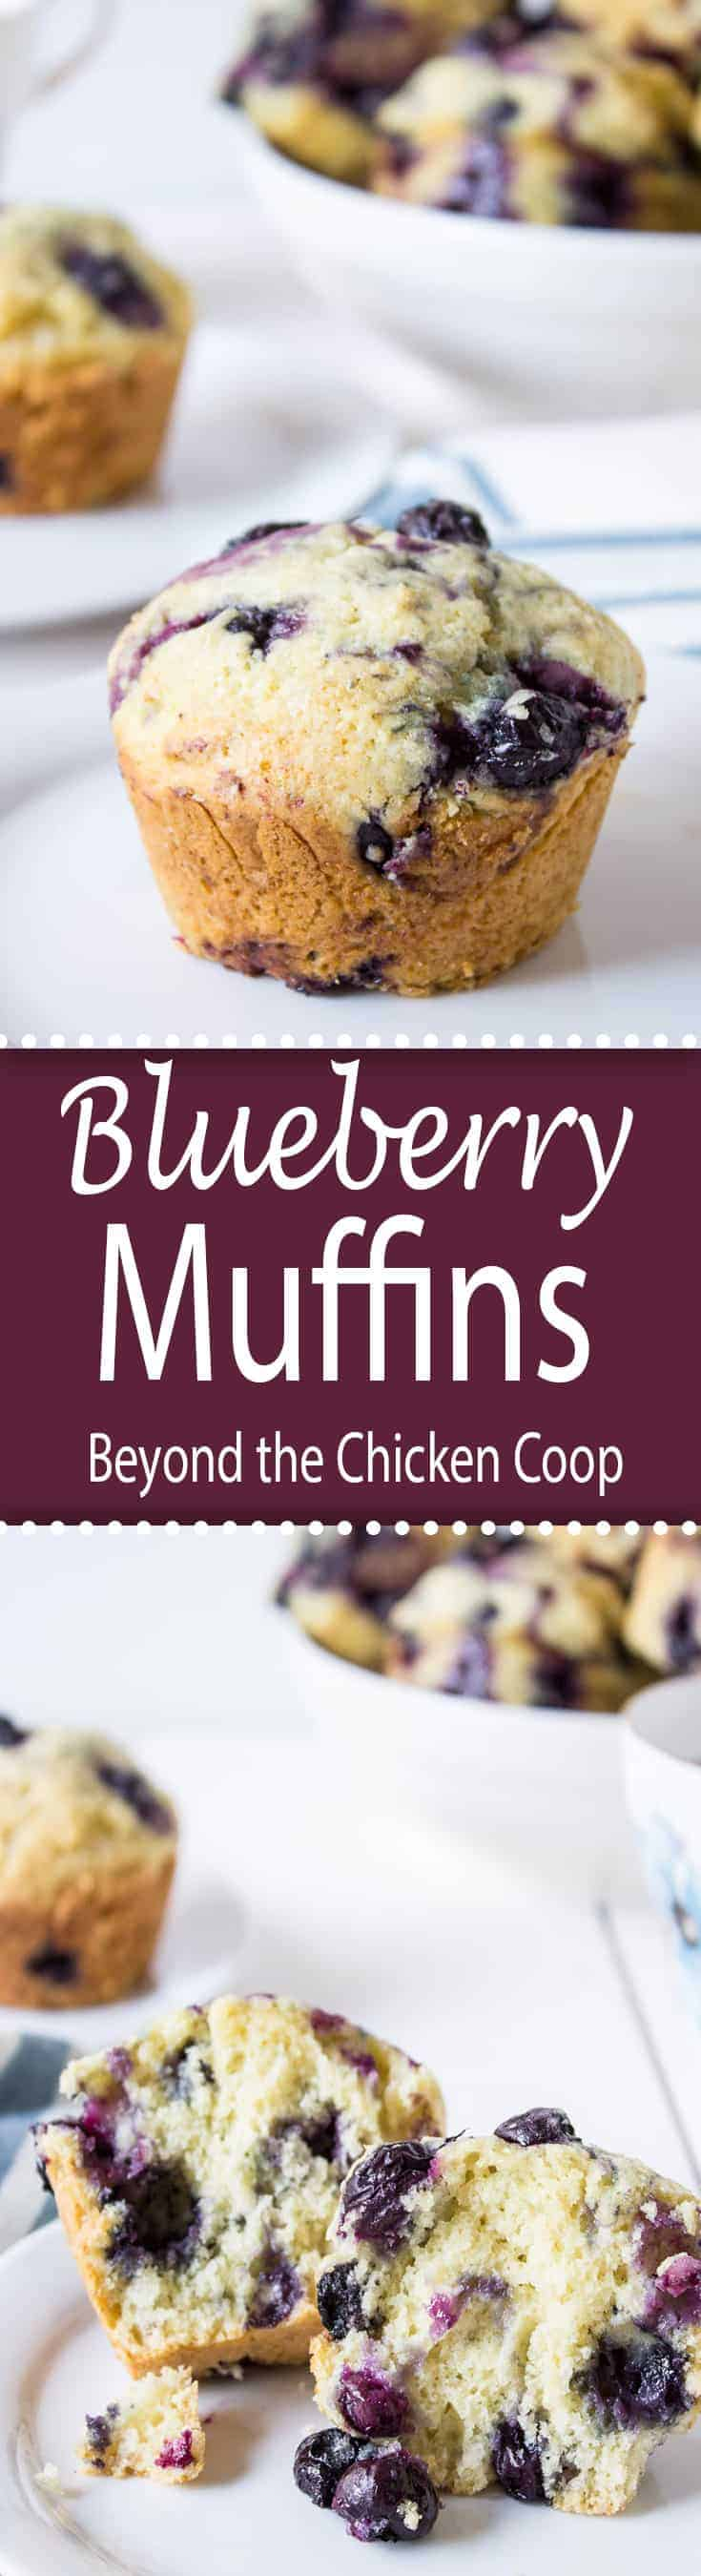 Homemade blueberry muffins are perfect for breakfast or a midday snack. #muffins #blueberry #blueberrymuffins